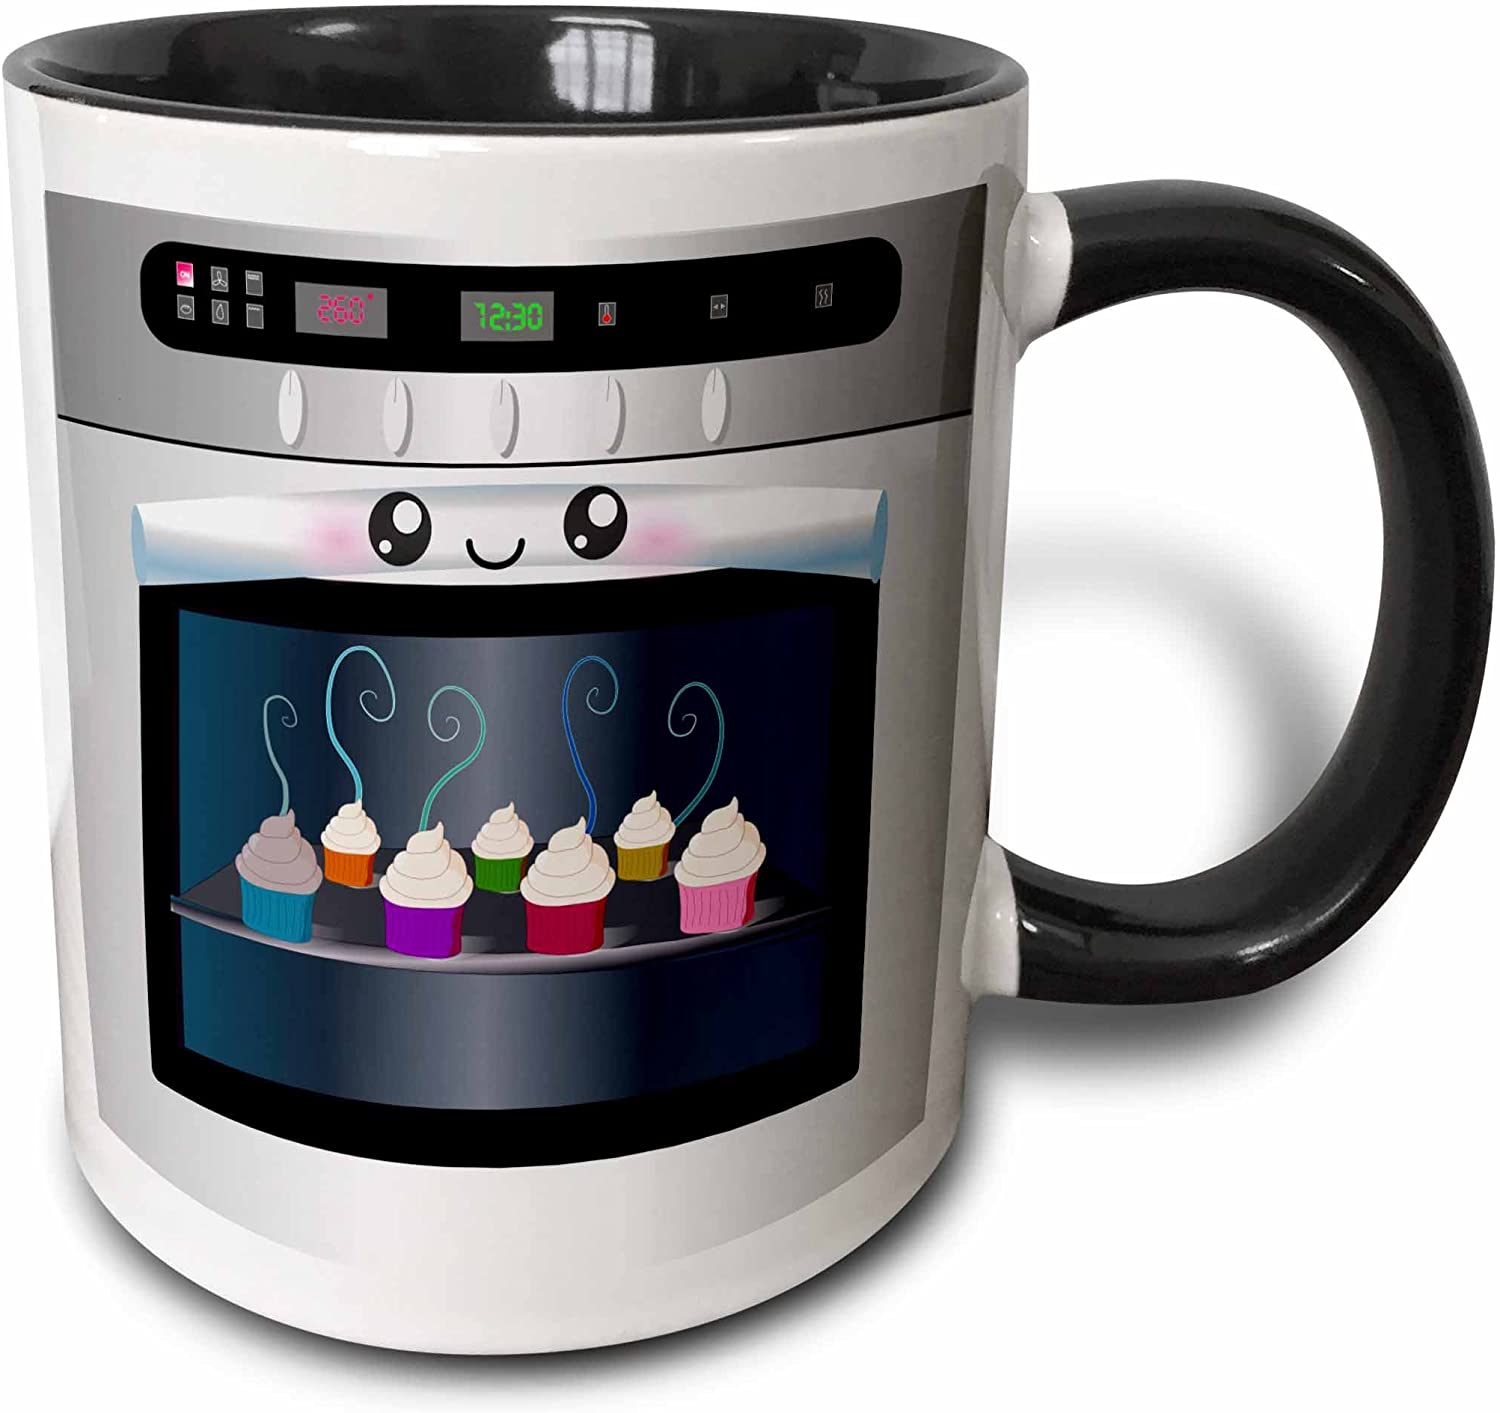 "3dRose mug_58309_4""Cute kawaii happy smiling oven filled with baking cupcakes - for chefs foodies and cooking fans"" Two Tone Black Mug, 11 oz, Multicolor"